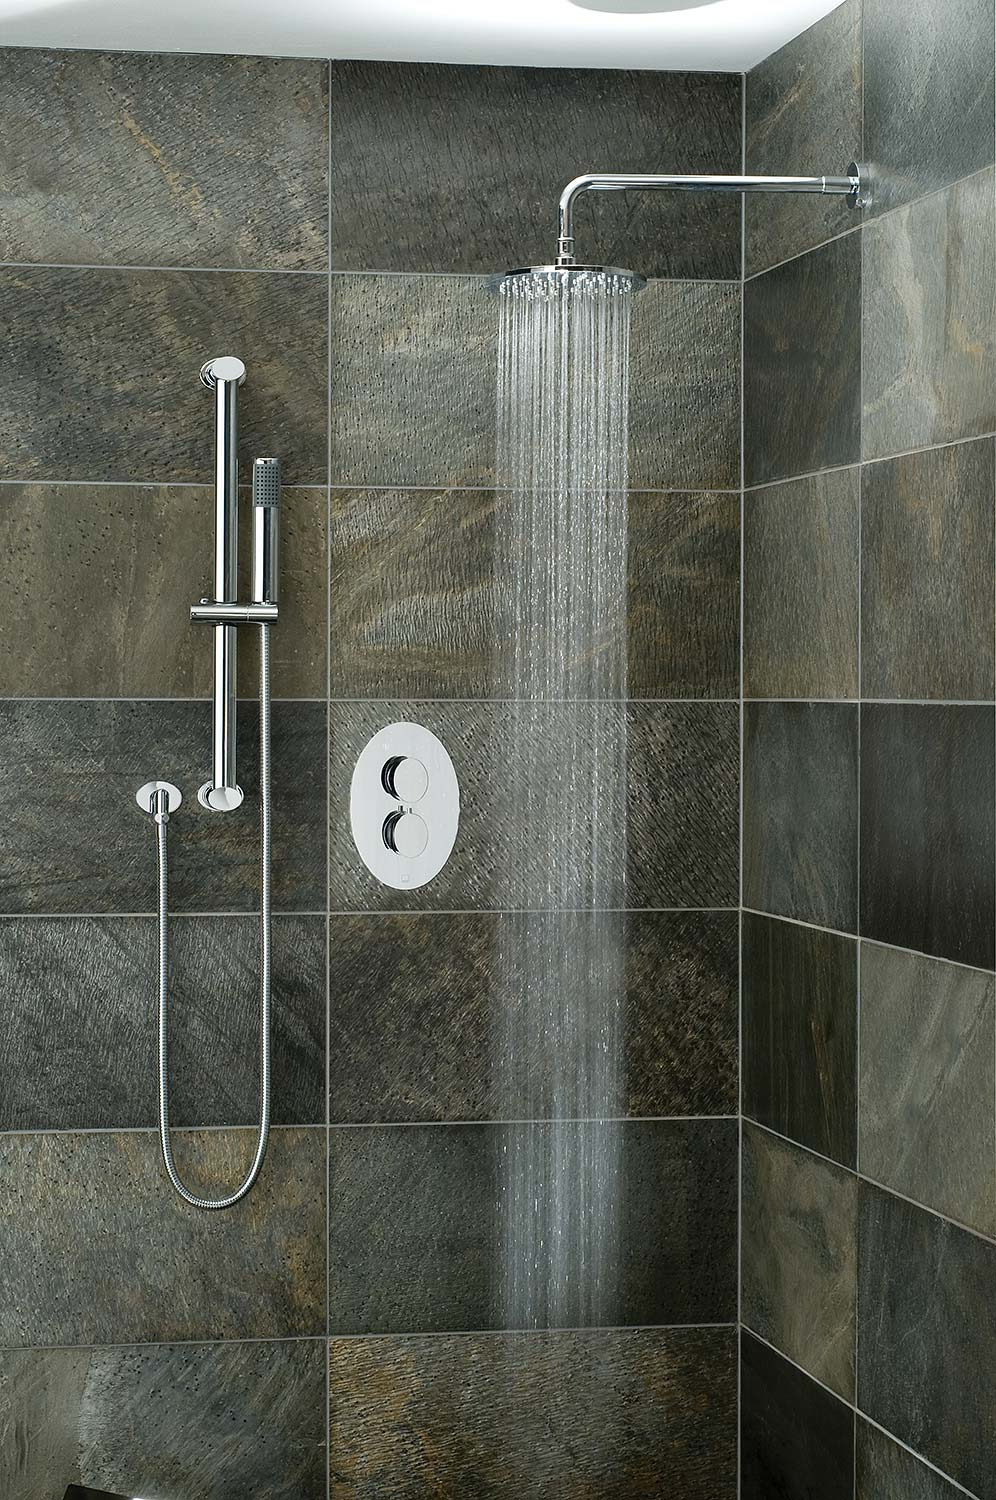 Tiled bathroom with a slide rail shower kit, shower arm and head, and oval thermostatic valve with and water cascading from the shower head